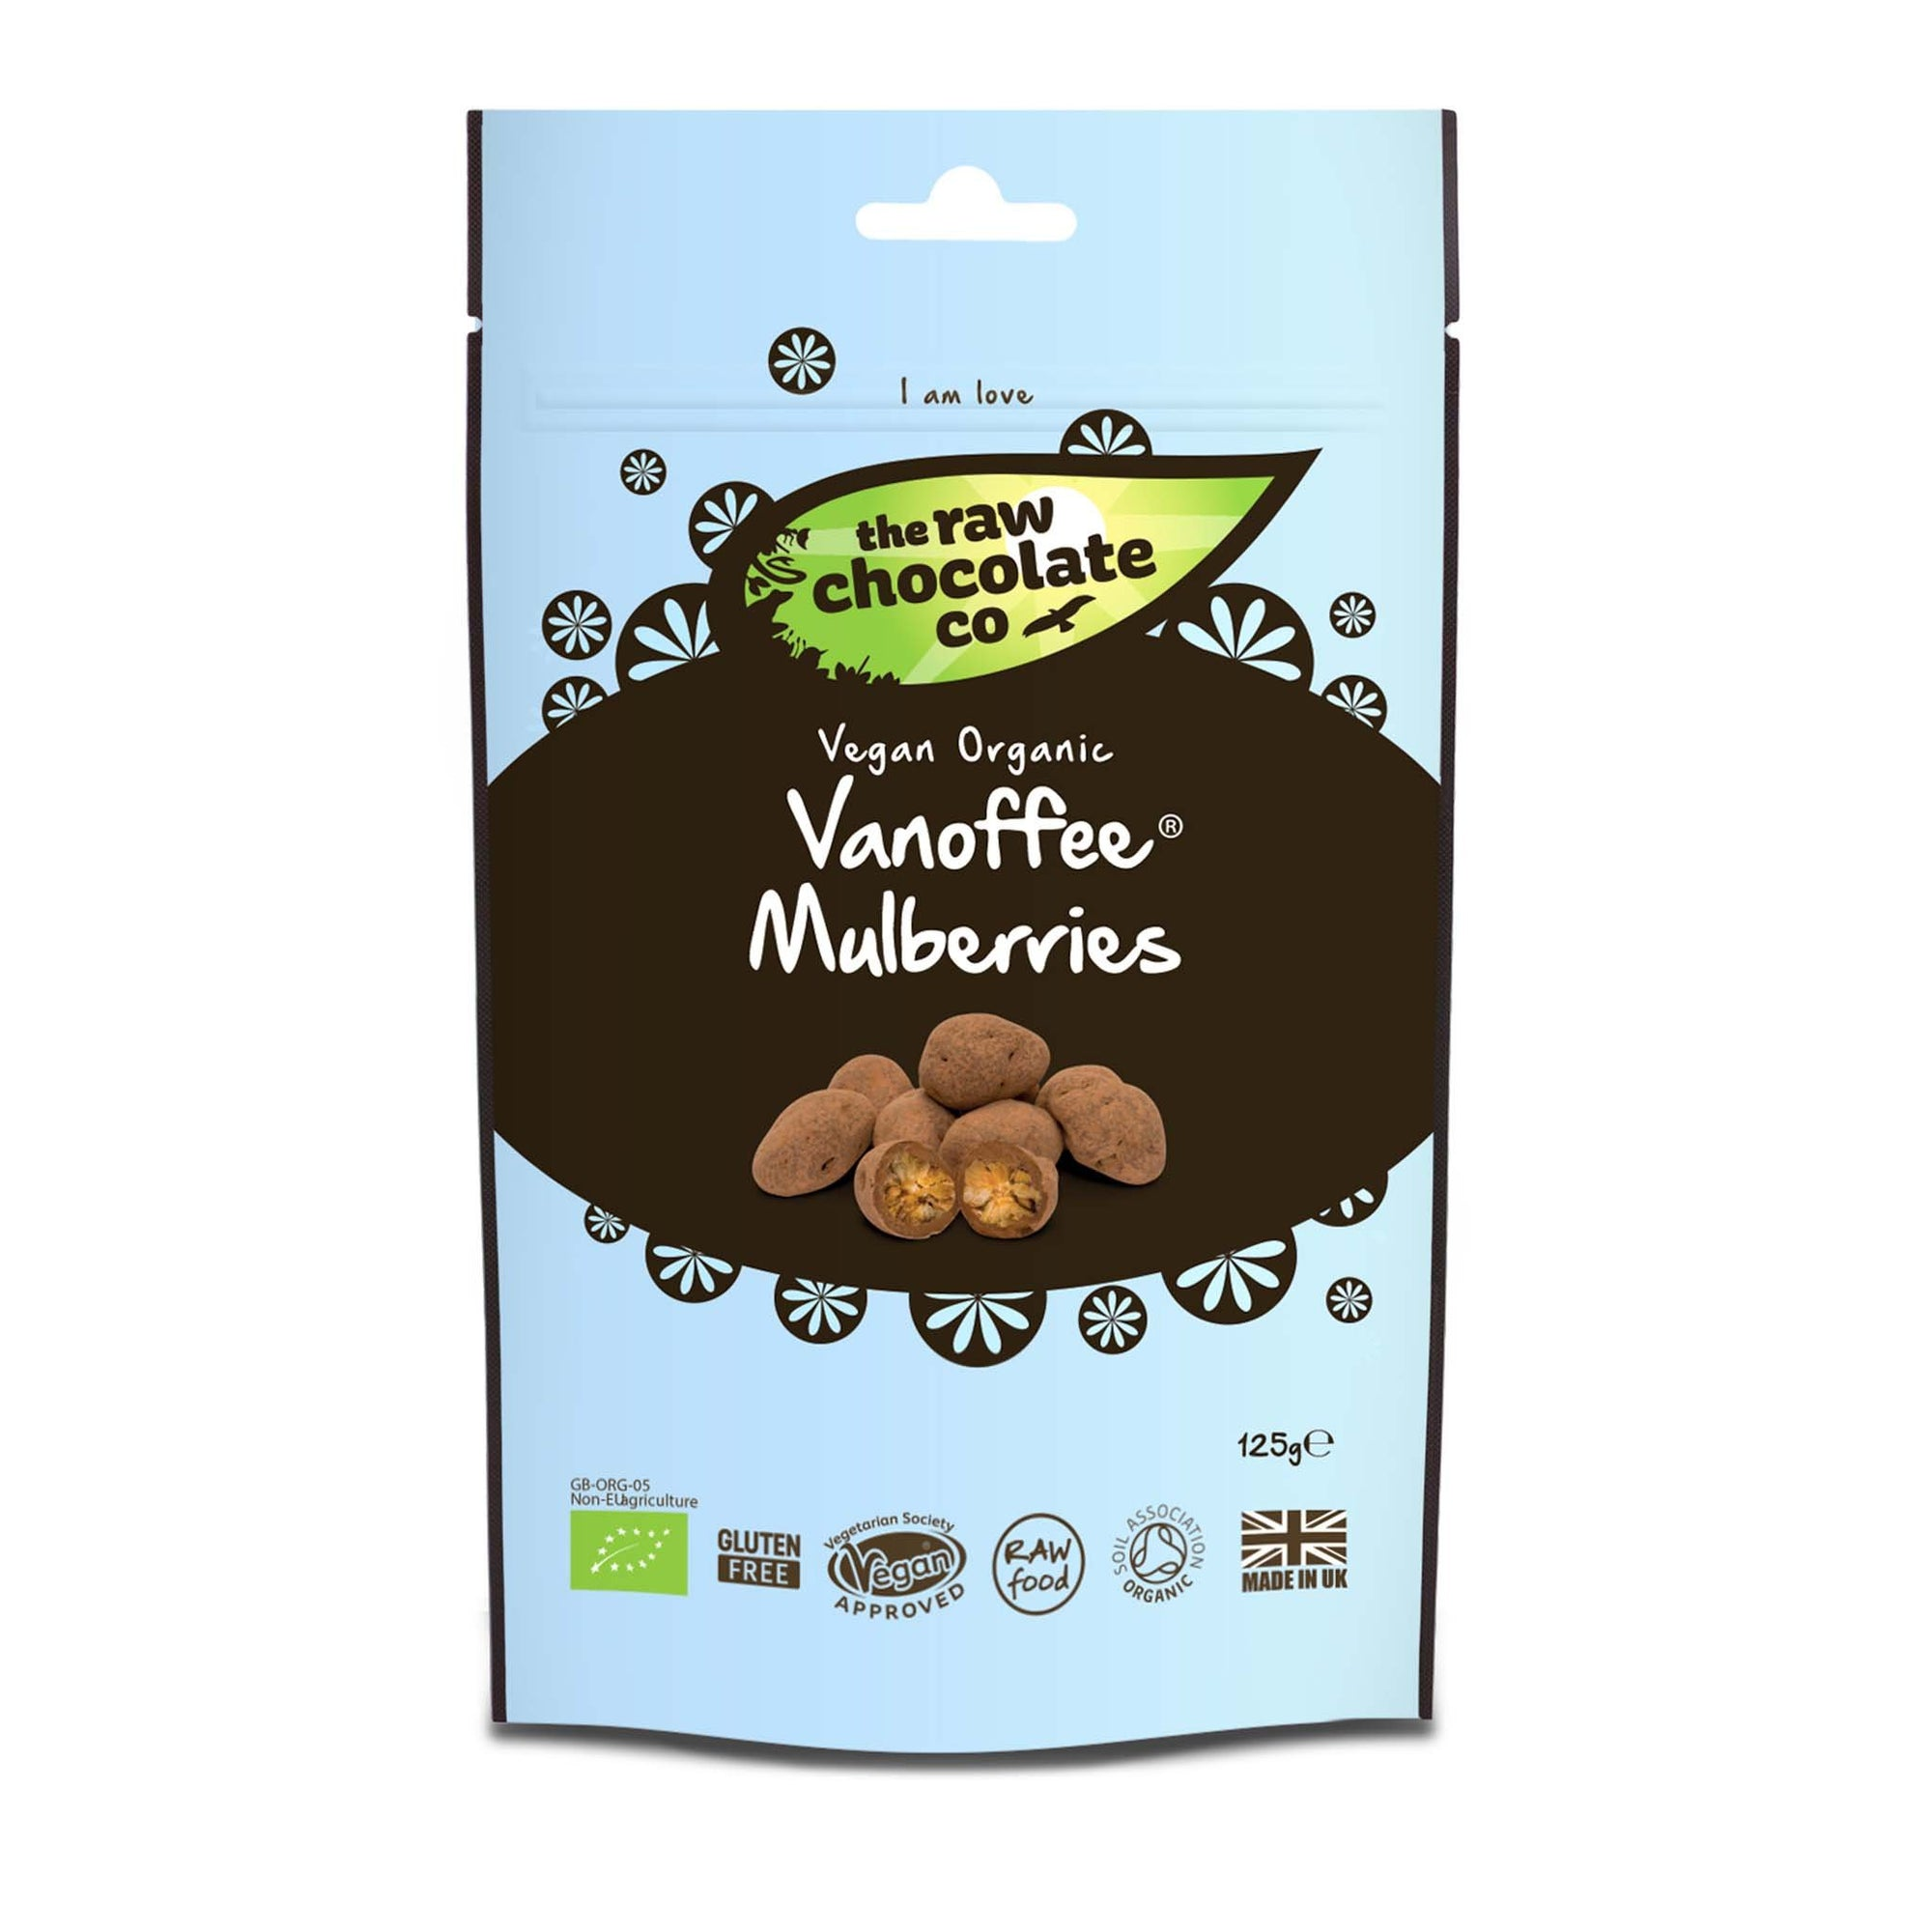 Vanoffee Mulberries - The Raw Chocolate Company